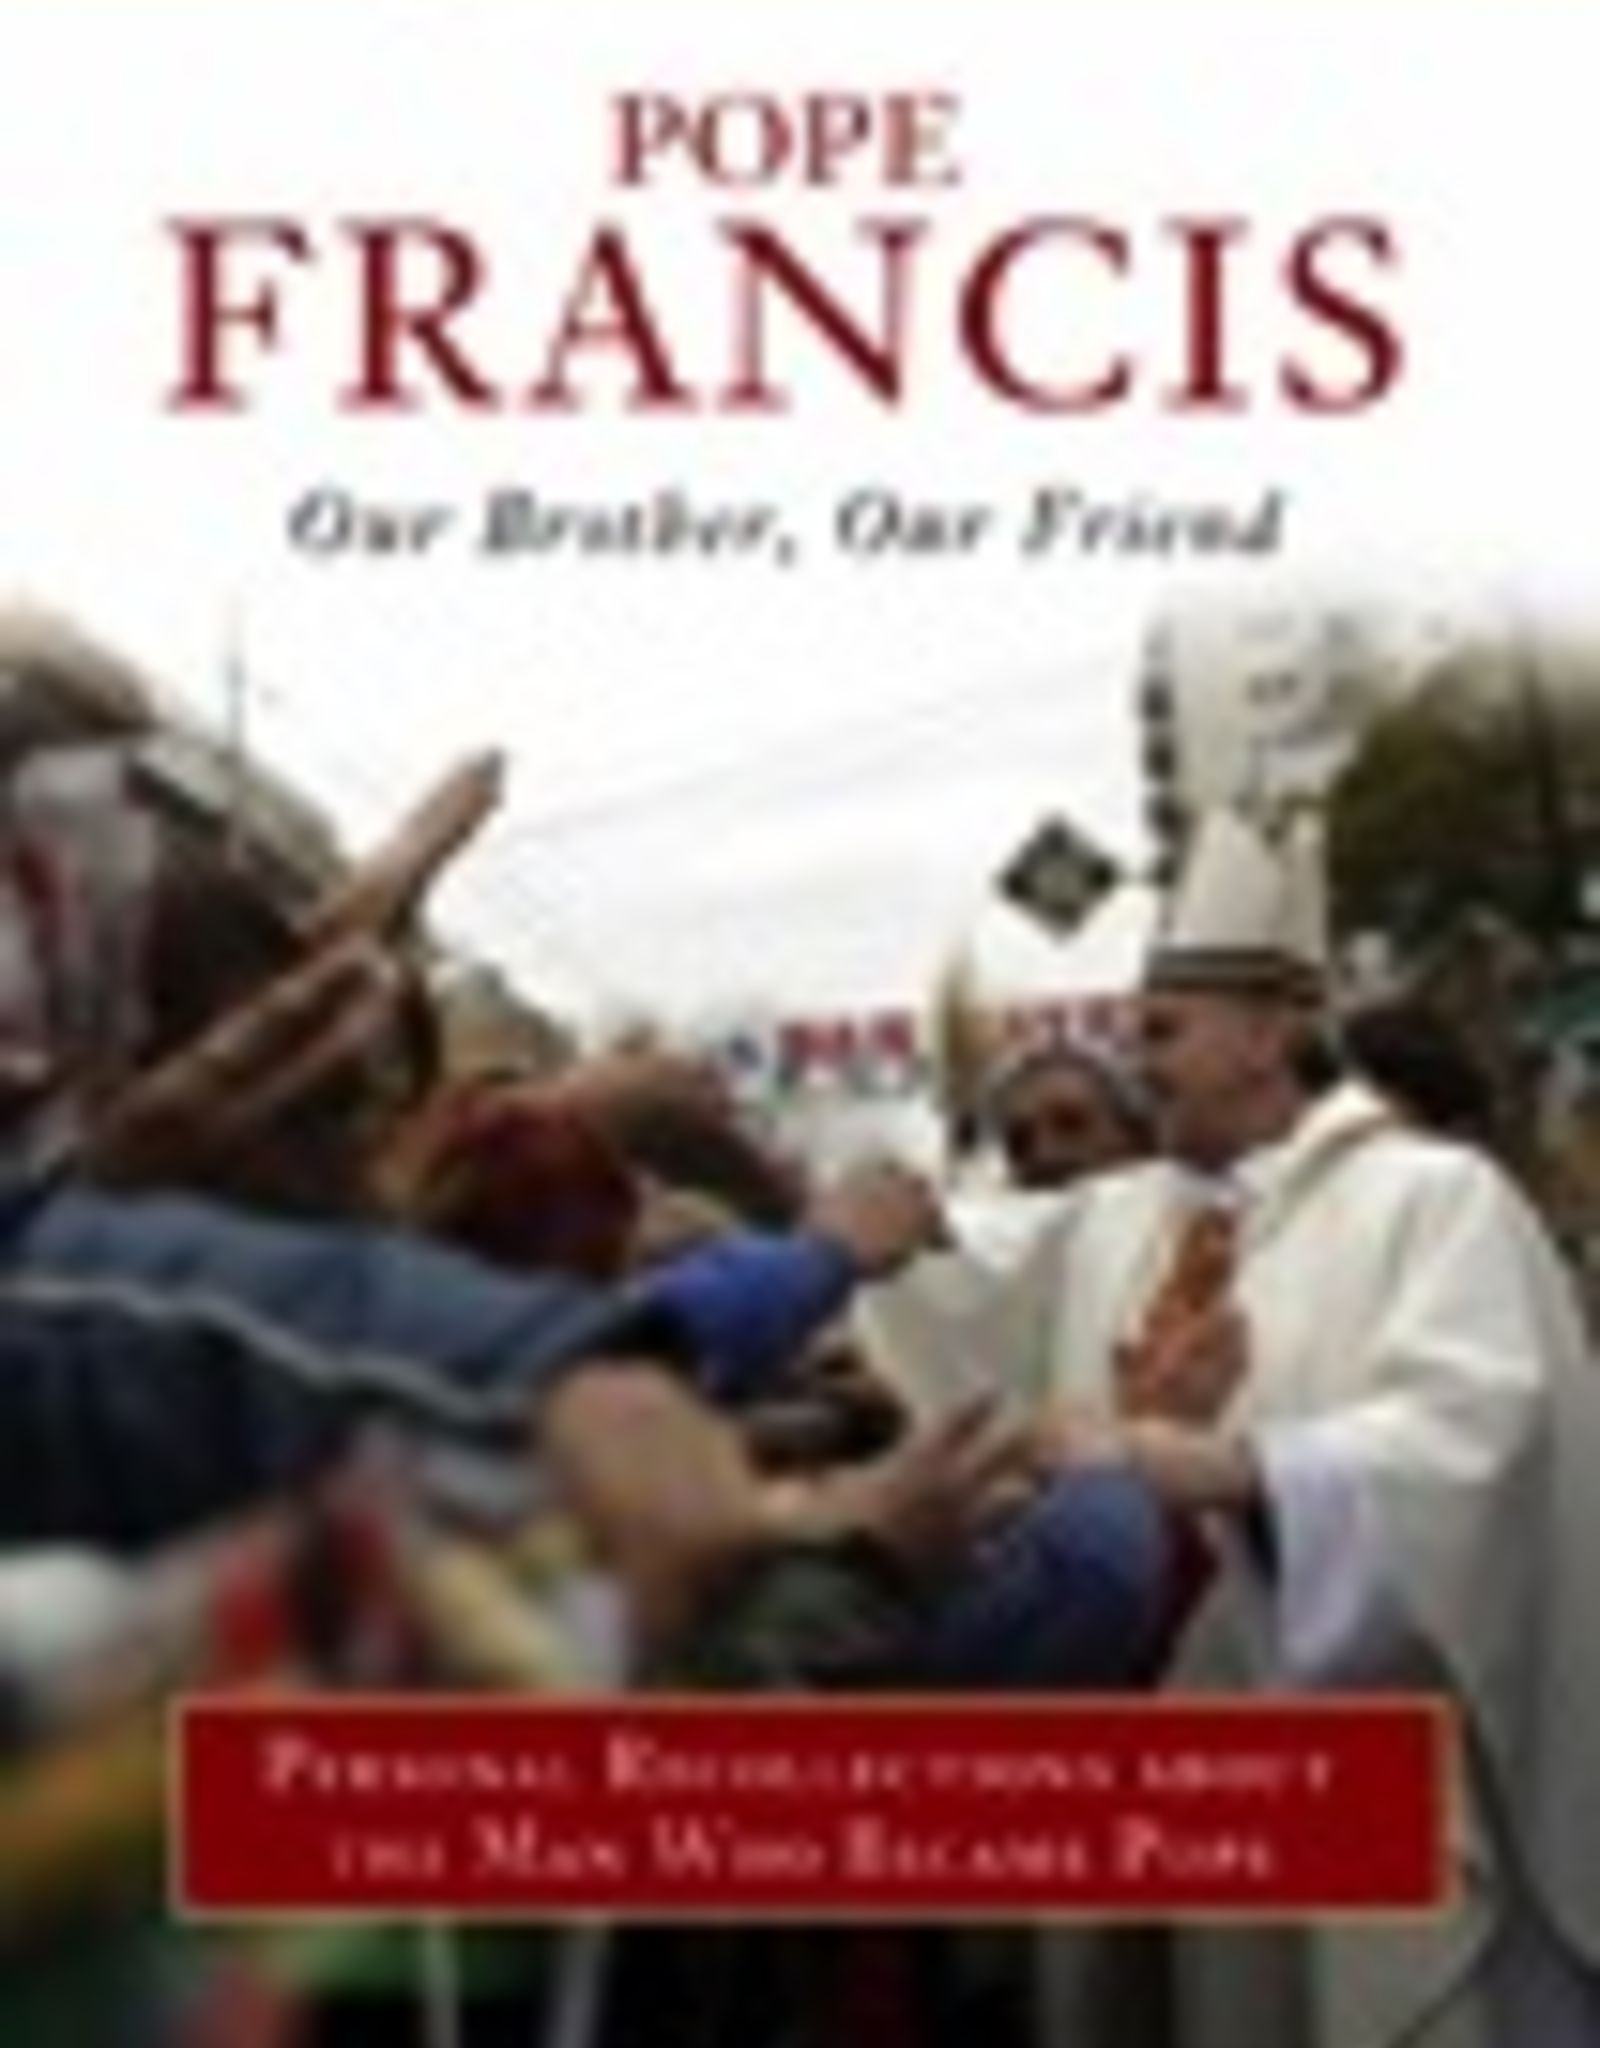 Ignatius Press Pope Francis:  Our Brother, Our Friend, Personal Recollections about the Man Who Became Pope, by Alejandro Bermudez (hardbound)